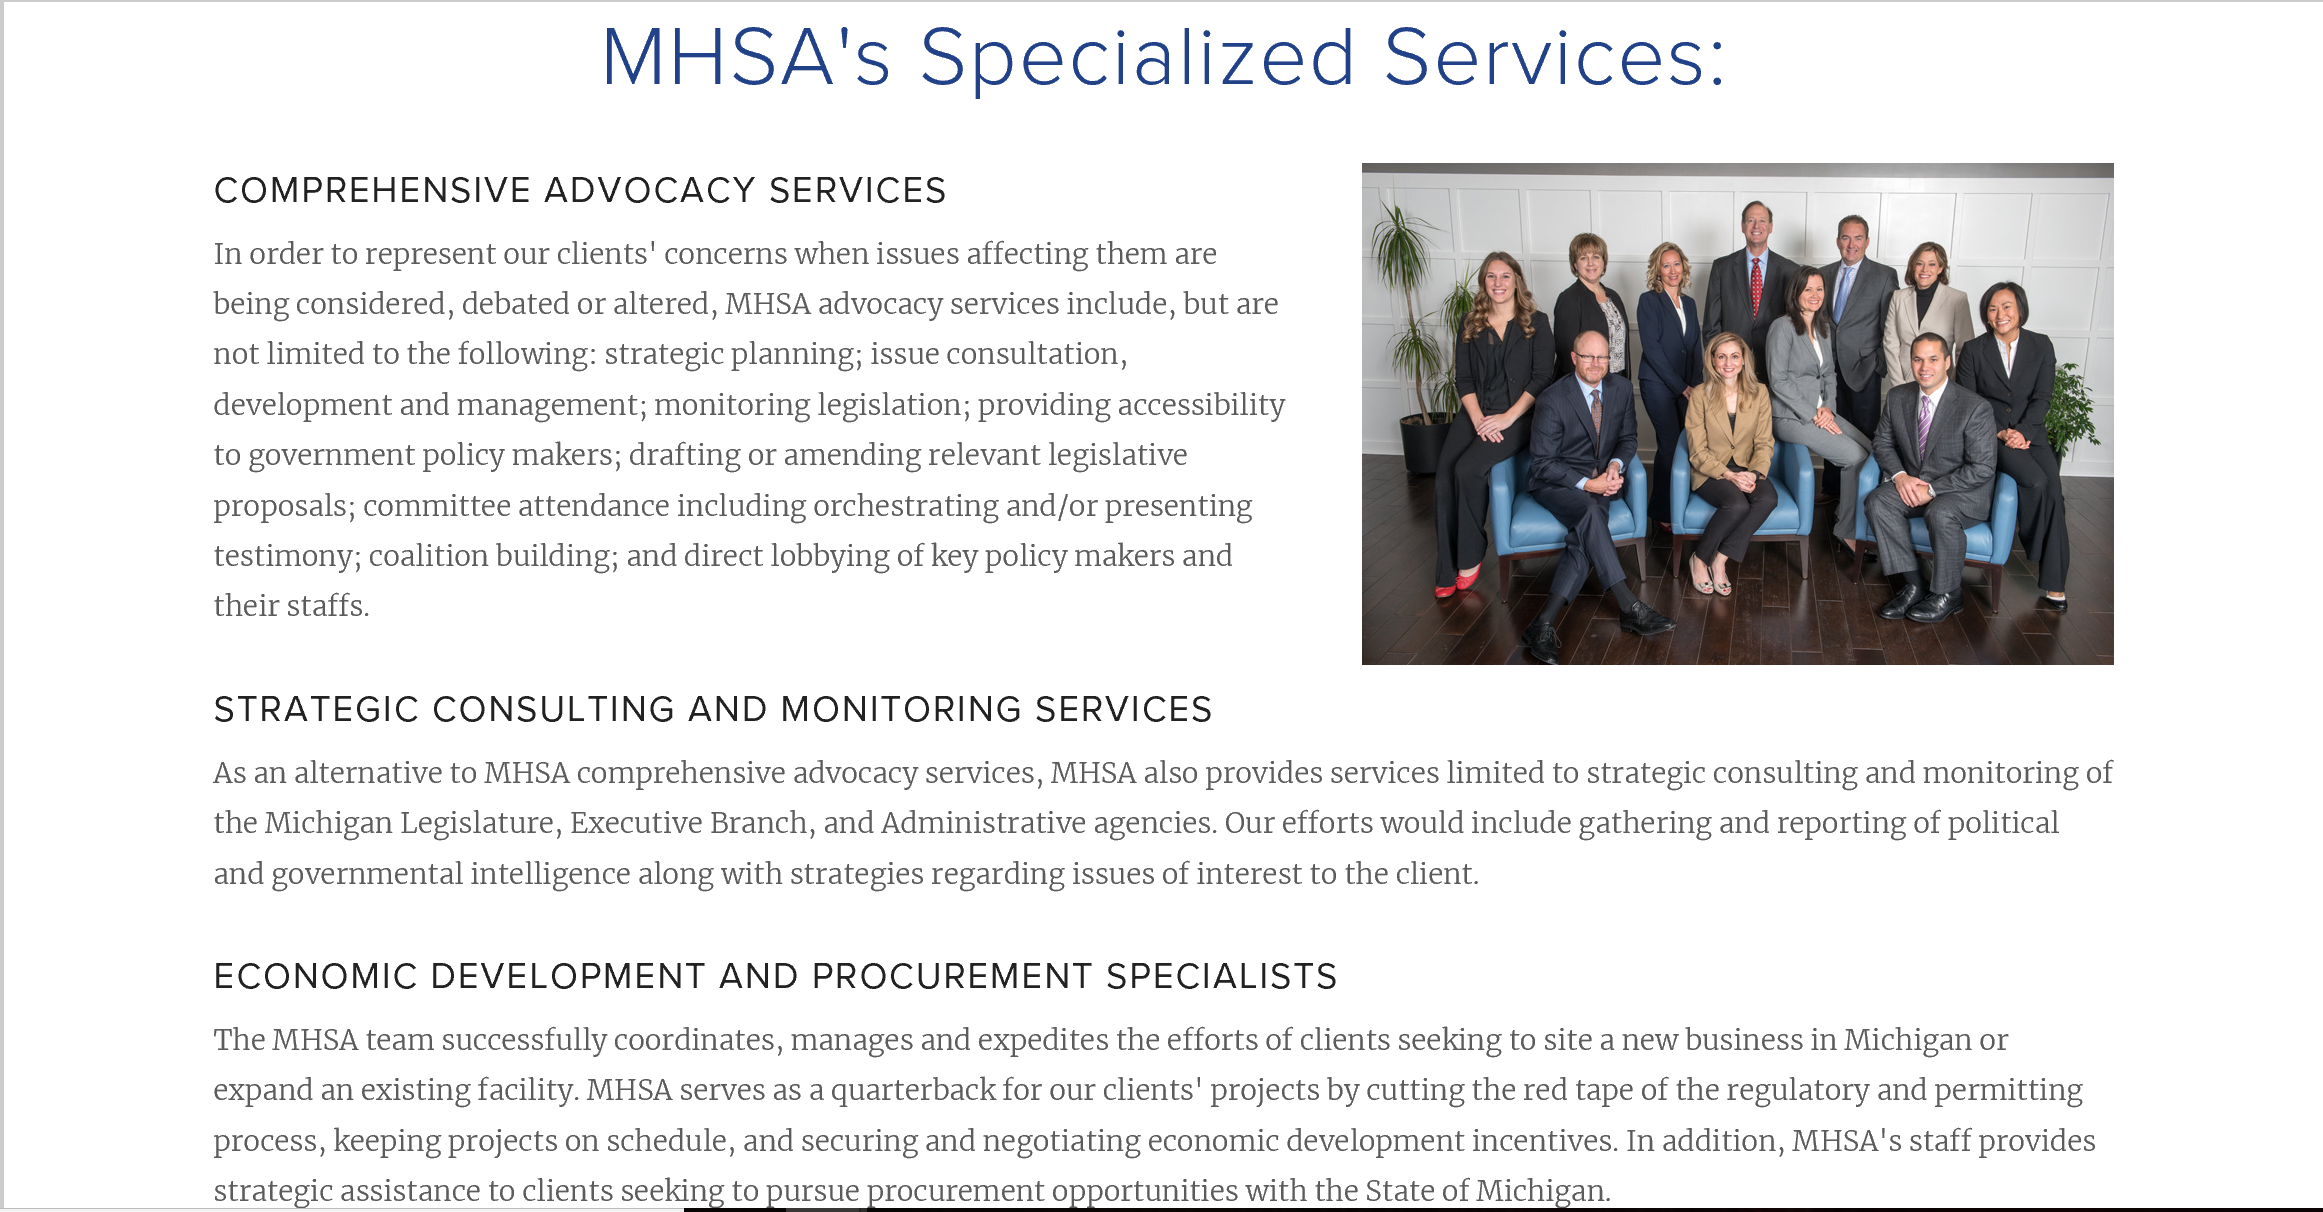 MHSA - Specialized Services